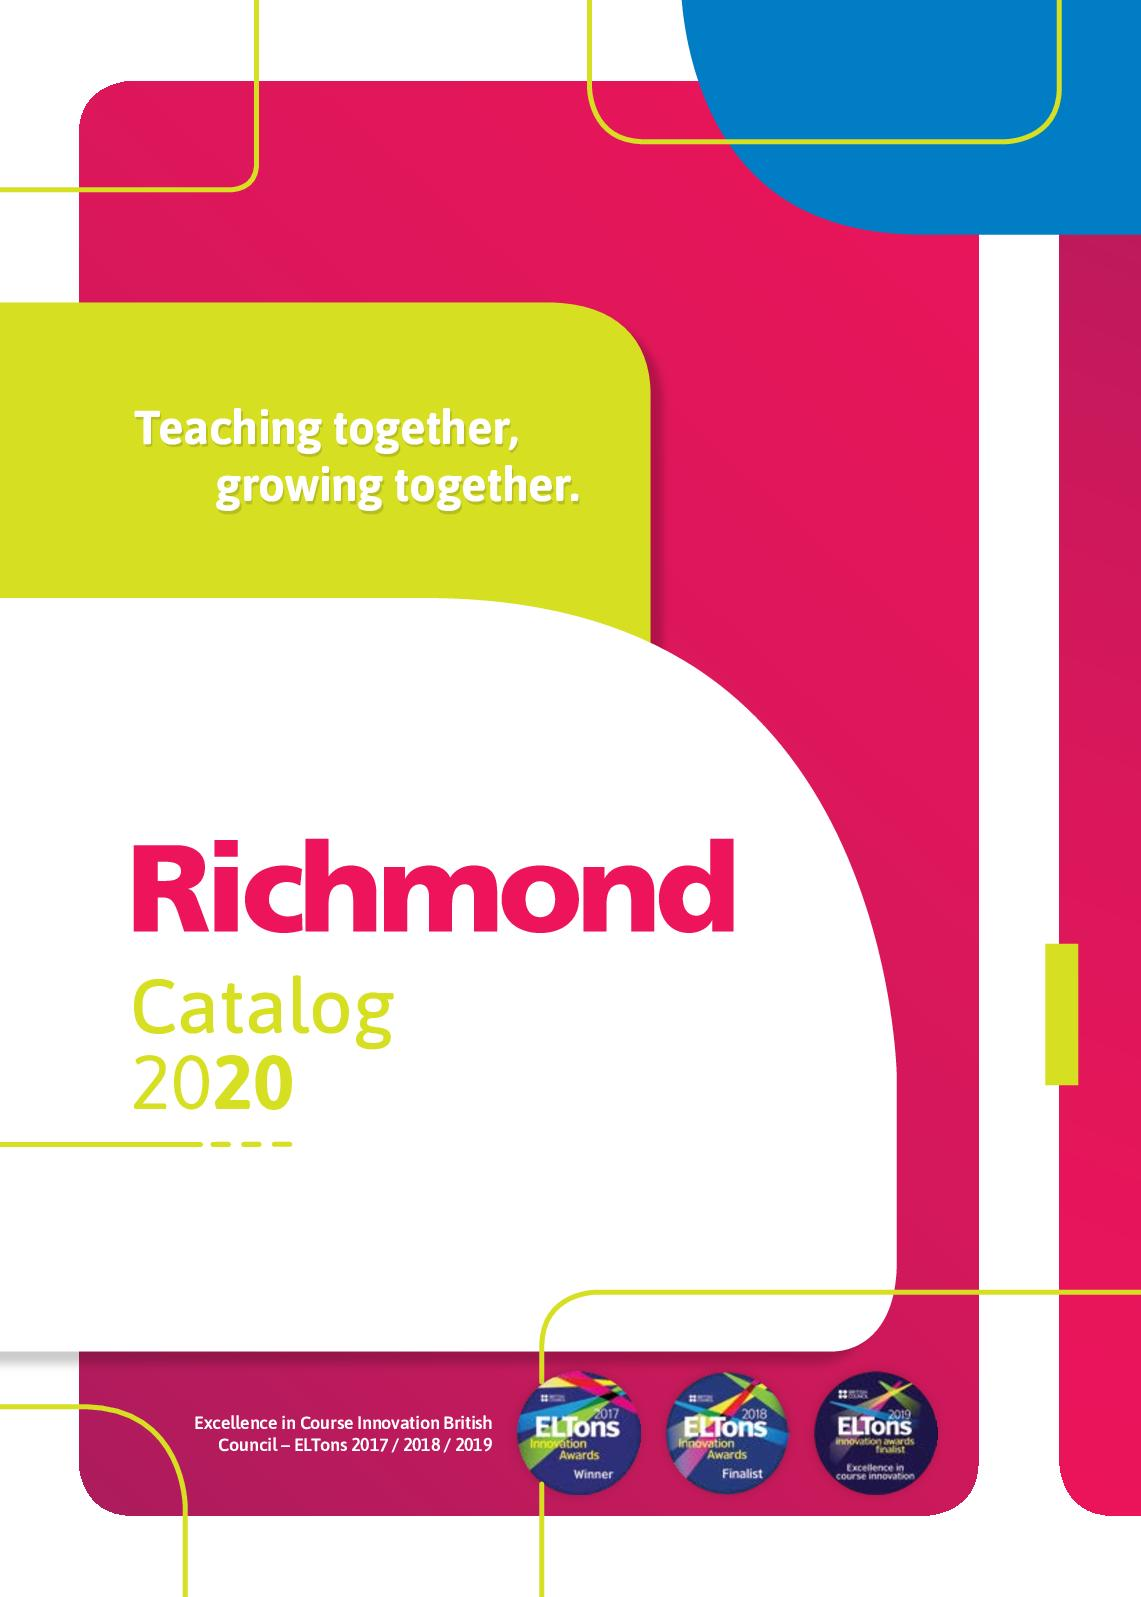 Calaméo Catalogo Richmond Didaticos 2020web